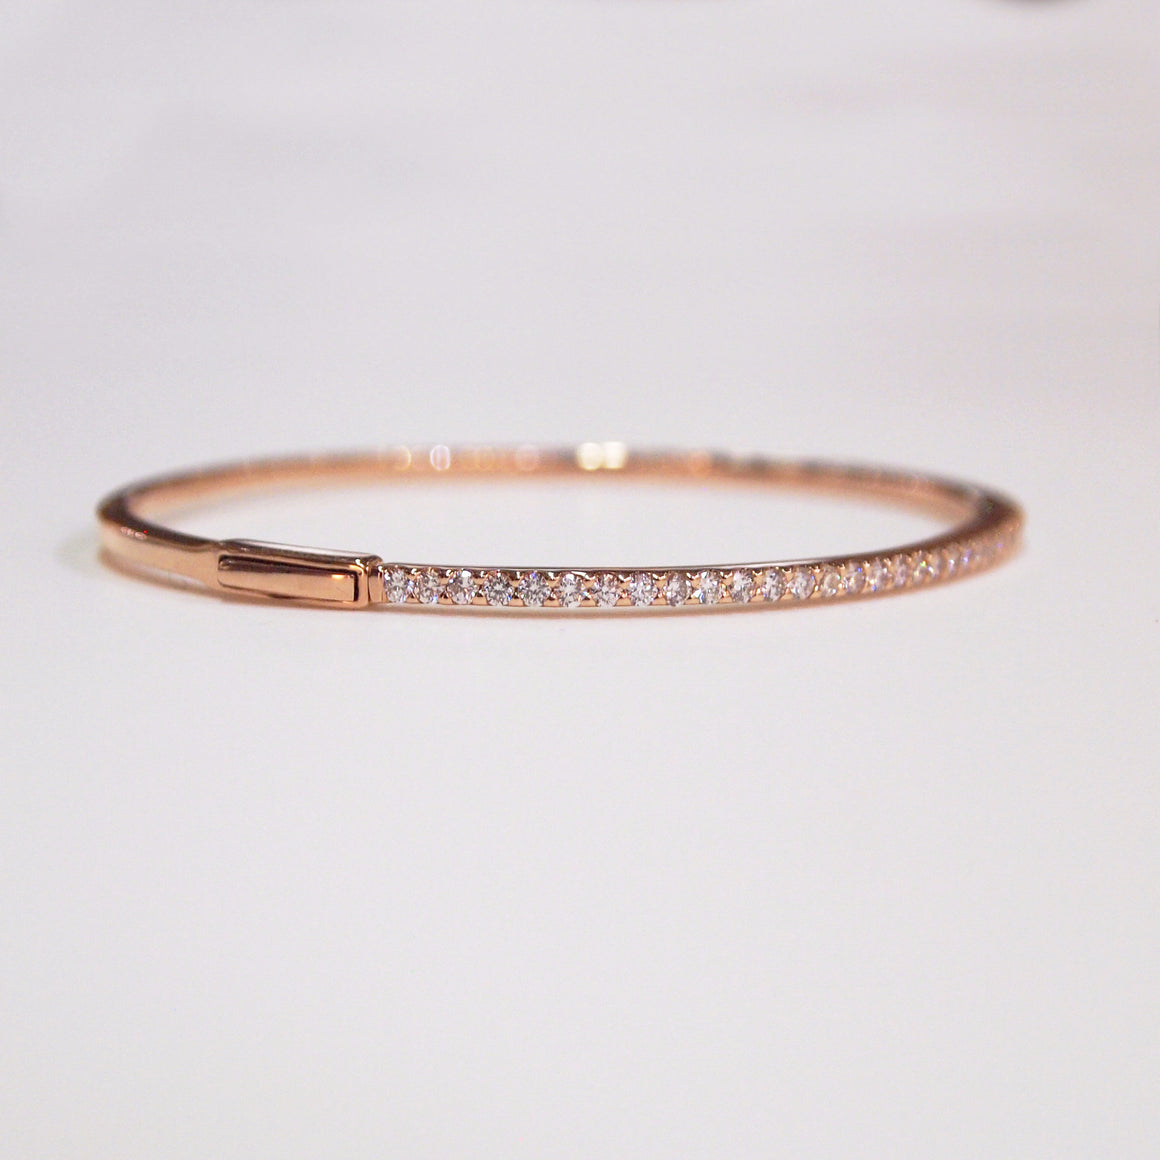 14K rose gold bangle bracelet with 49 brilliant-cut diamonds